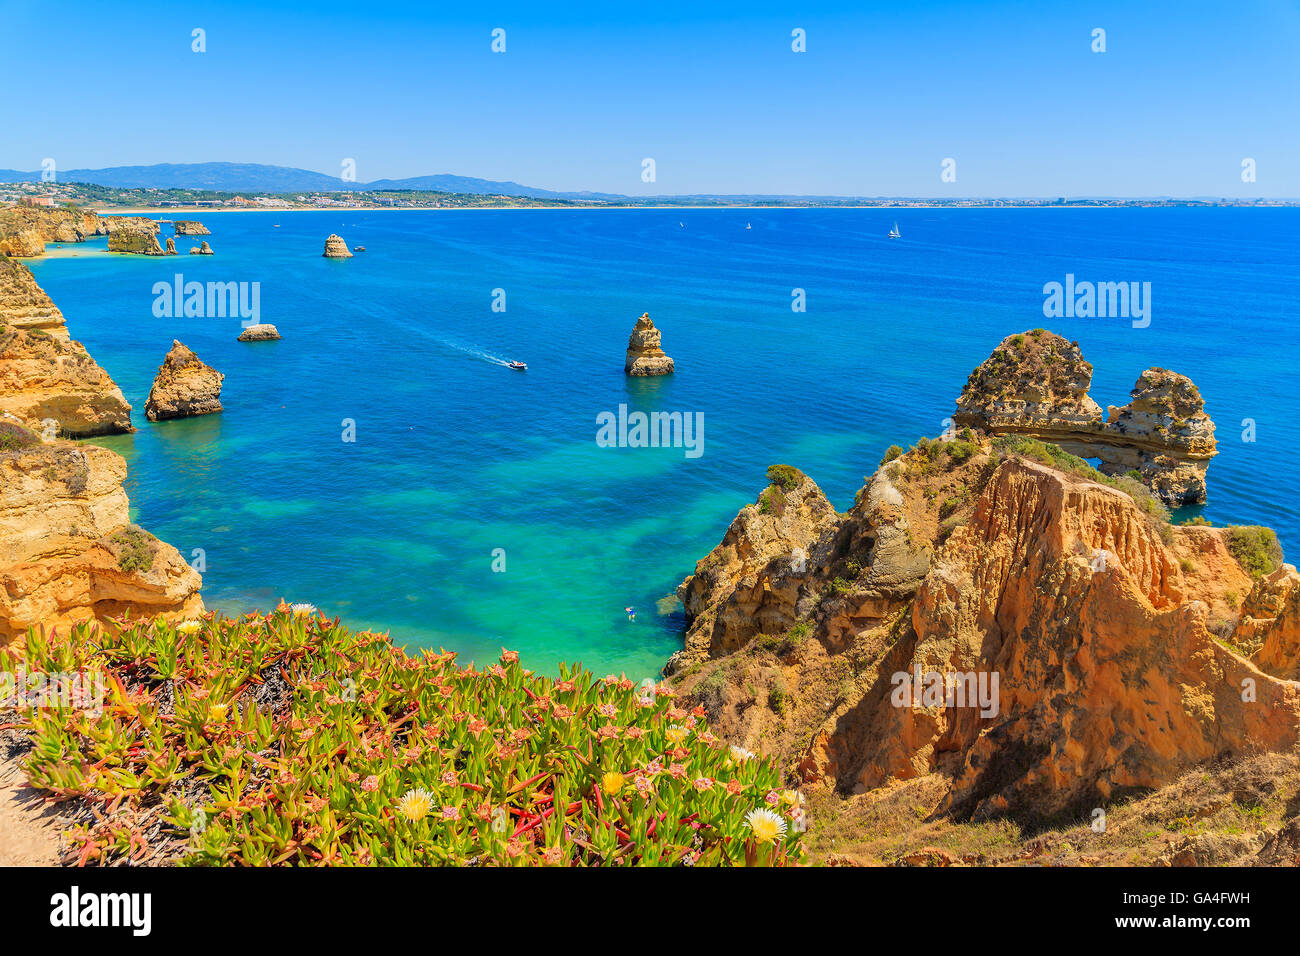 Flowers in spring time on cliff top and turquoise sea water at Ponta da Piedade, Algarve region, Portugal Stock Photo